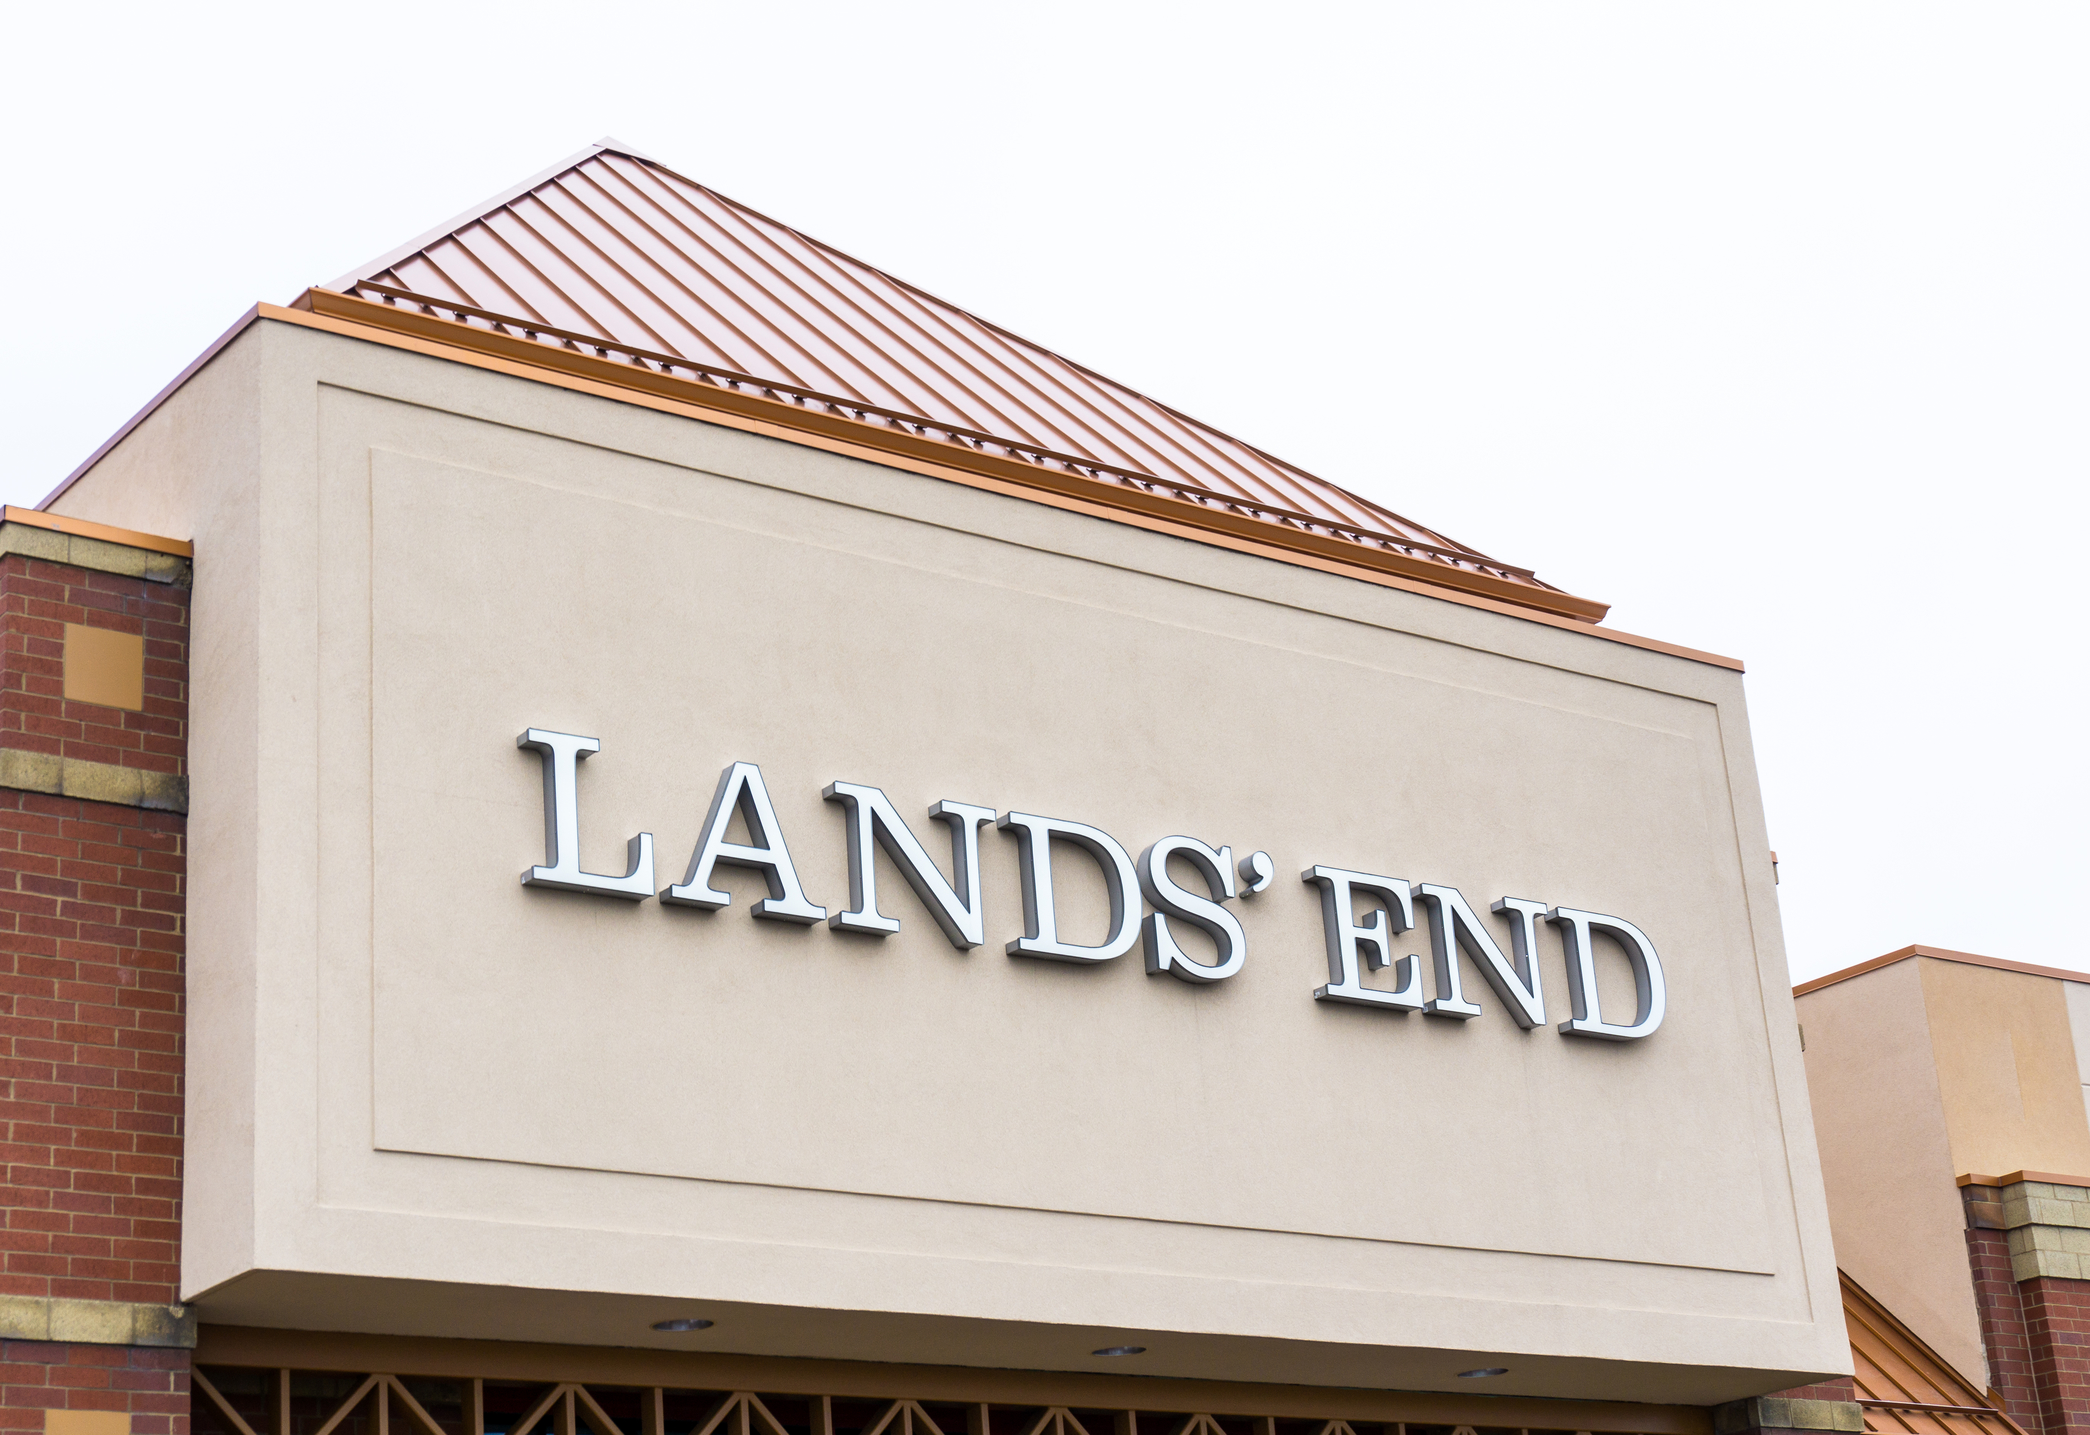 Lands' End coupon: Receive up to 40% off your order